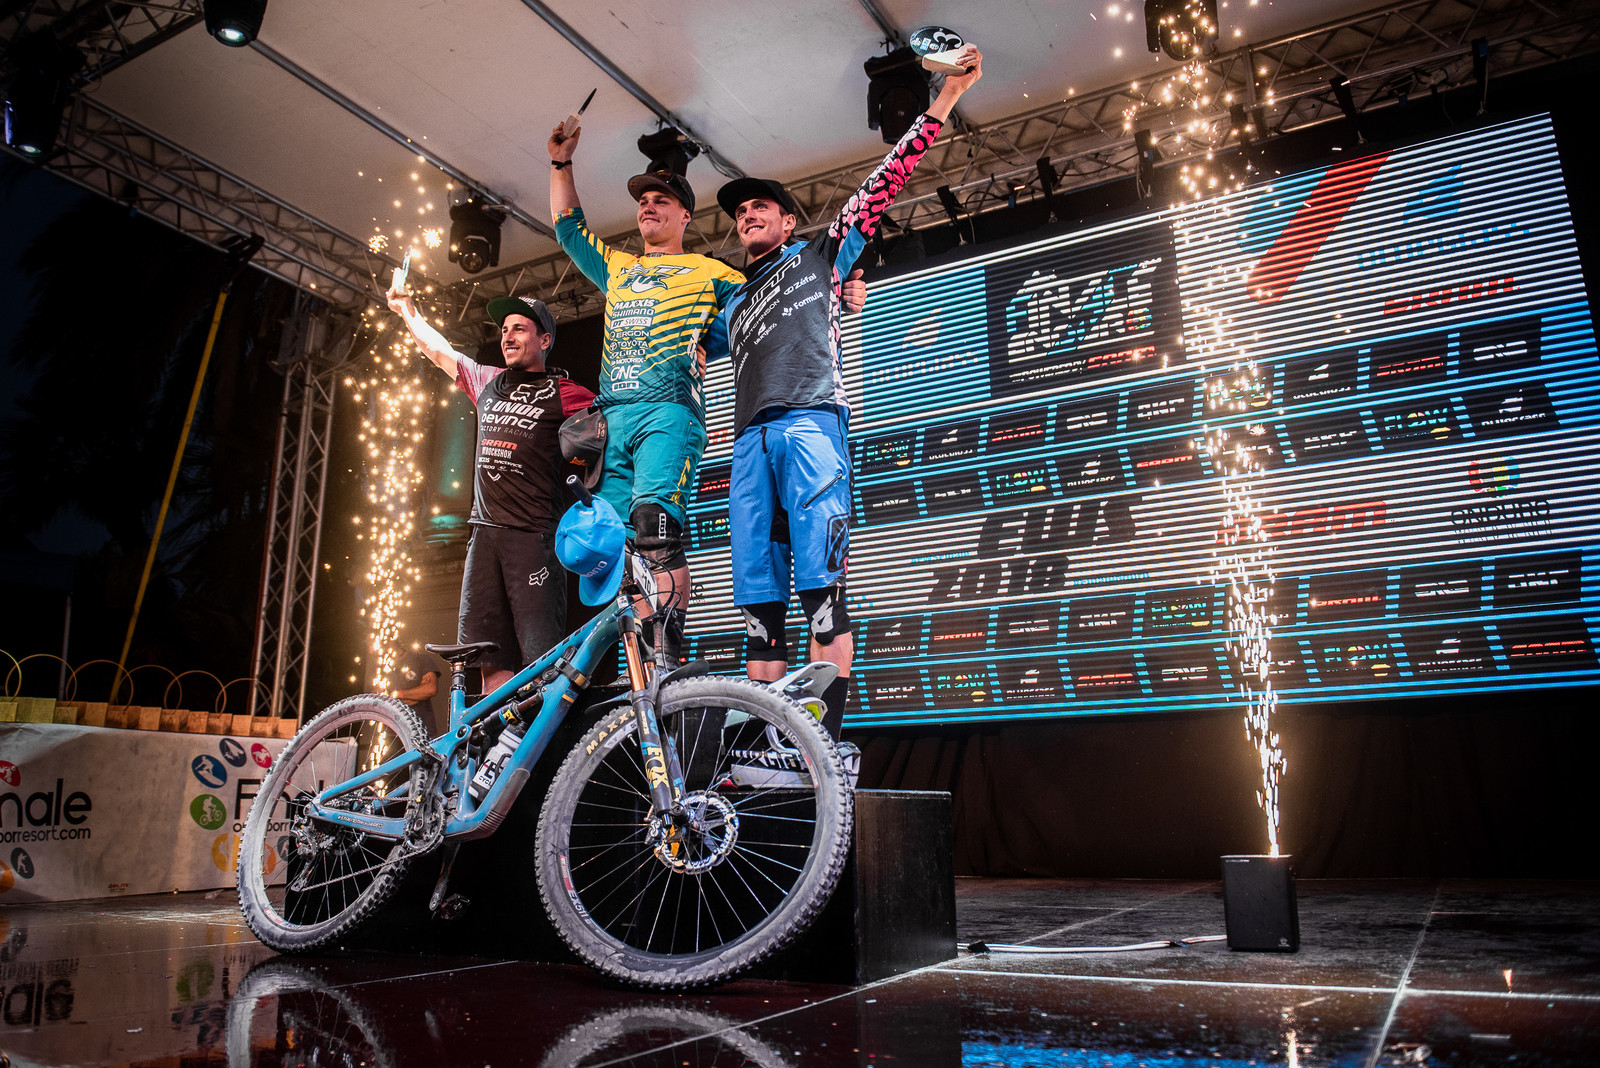 EWS RD 8 - CushCore Riders: Richie makes history, Amour and Newell secure championships!